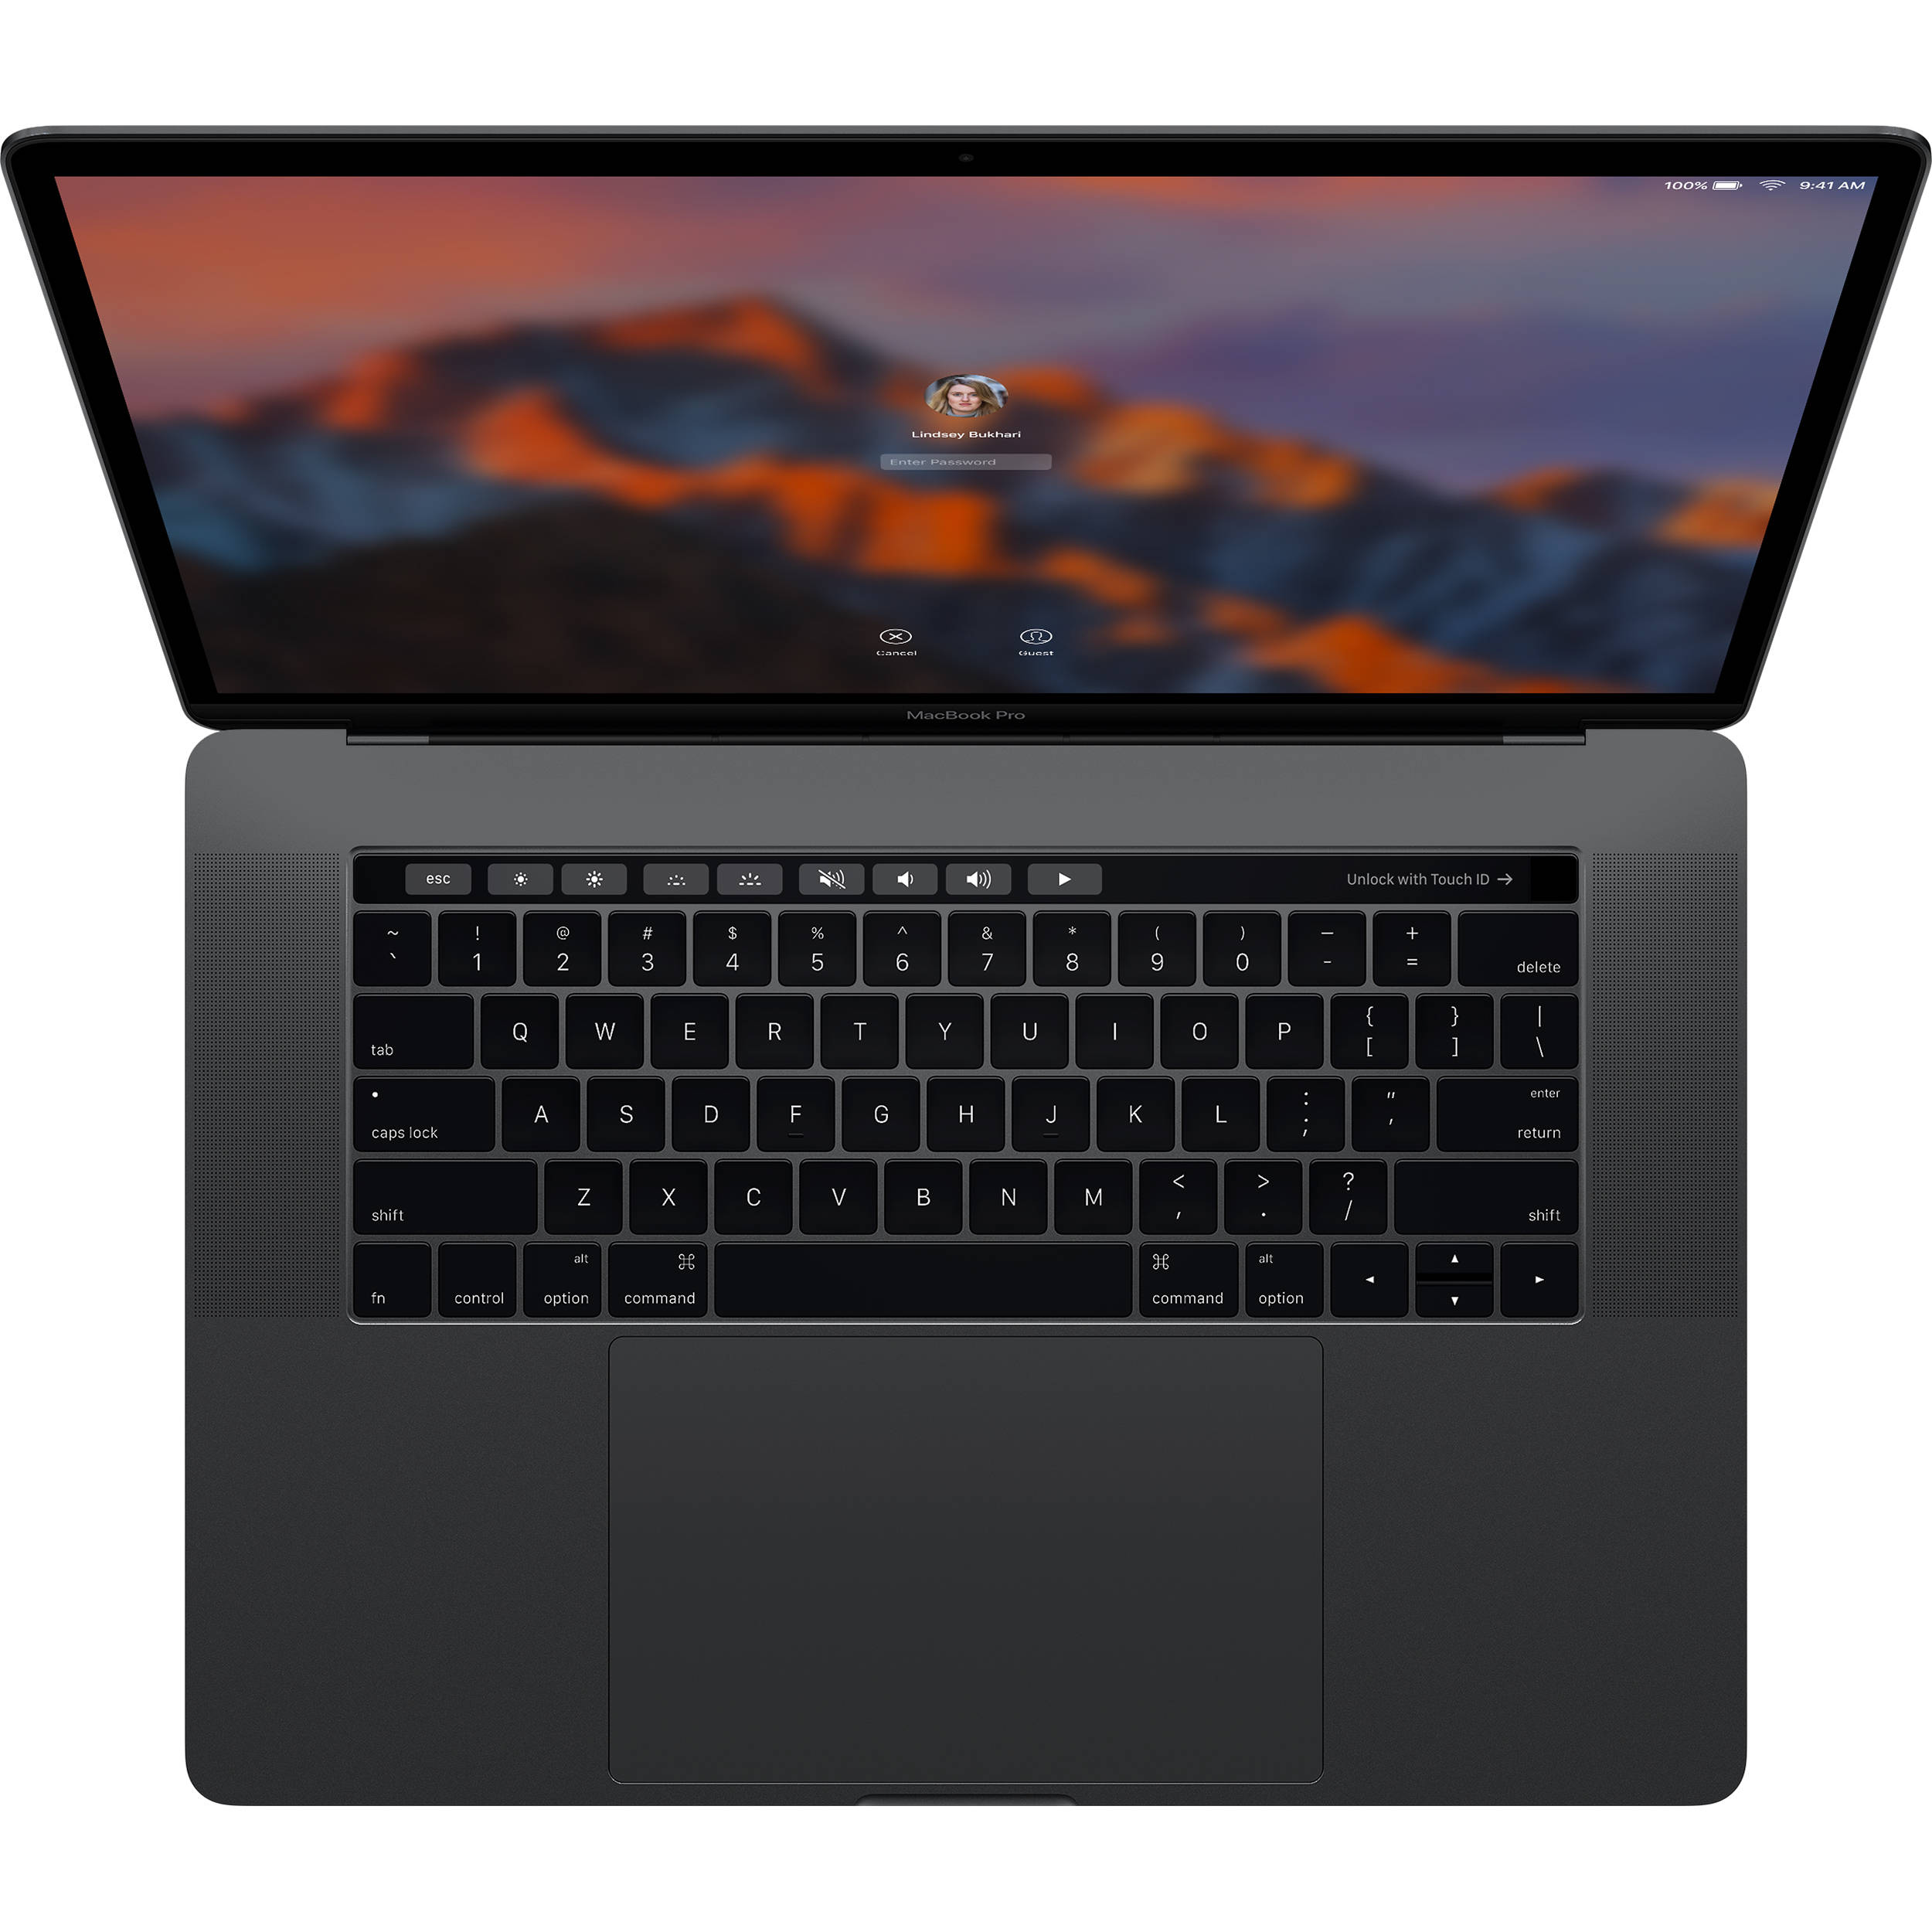 MPTR2 - Macbook Pro 2017 - 15'' Quad I7 2.8Ghz 16GB 256GB SSD AMD Pro 555 2GB New 99%